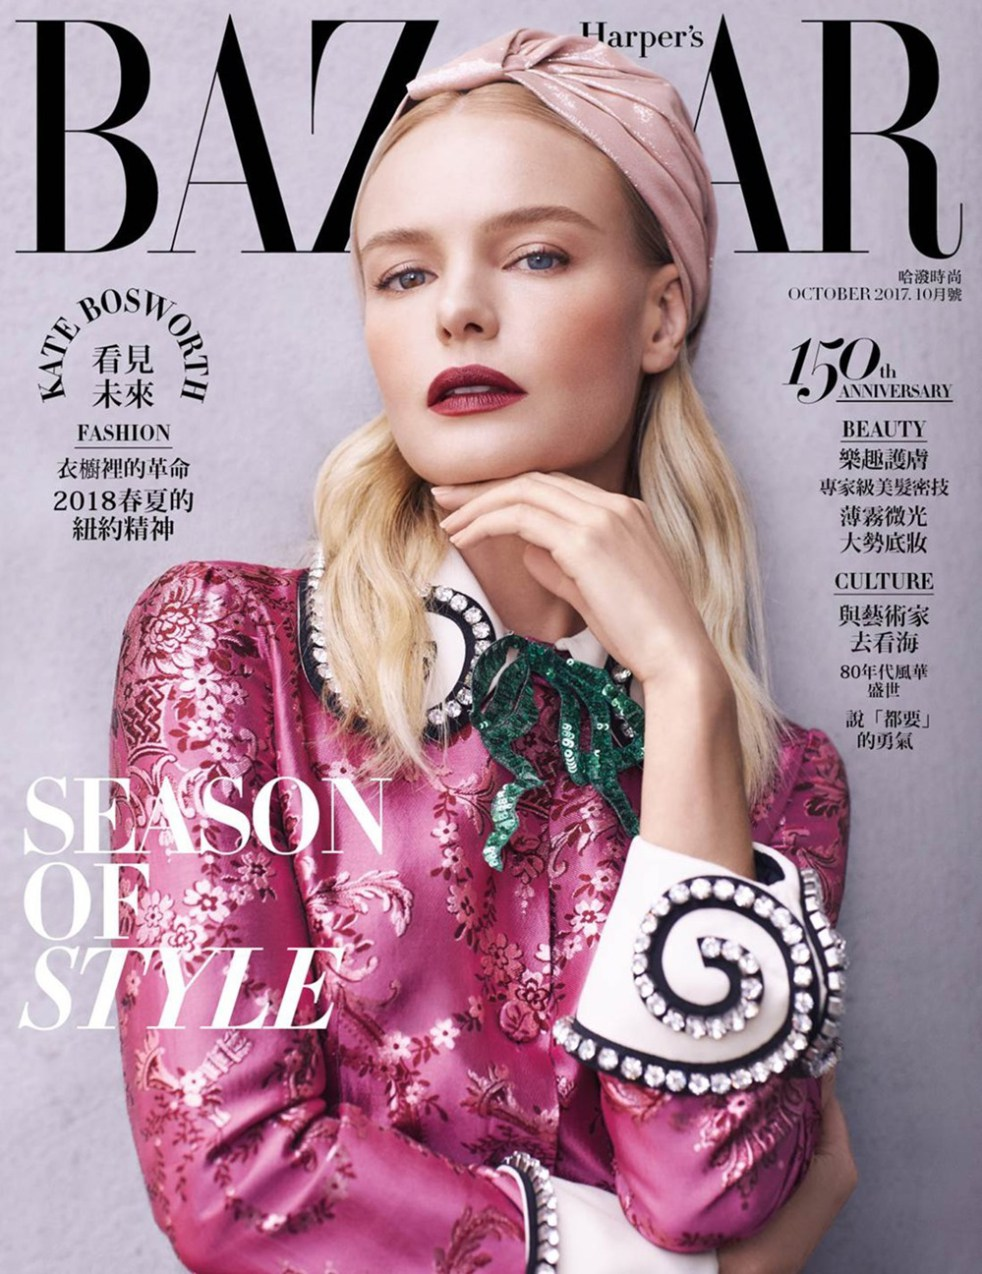 HARPERS-BAZAAR-TAIWAN-Kate-Bosworth-by-Harper-Smith.-Solange-Franklin-October-2017-www.imageampl-7